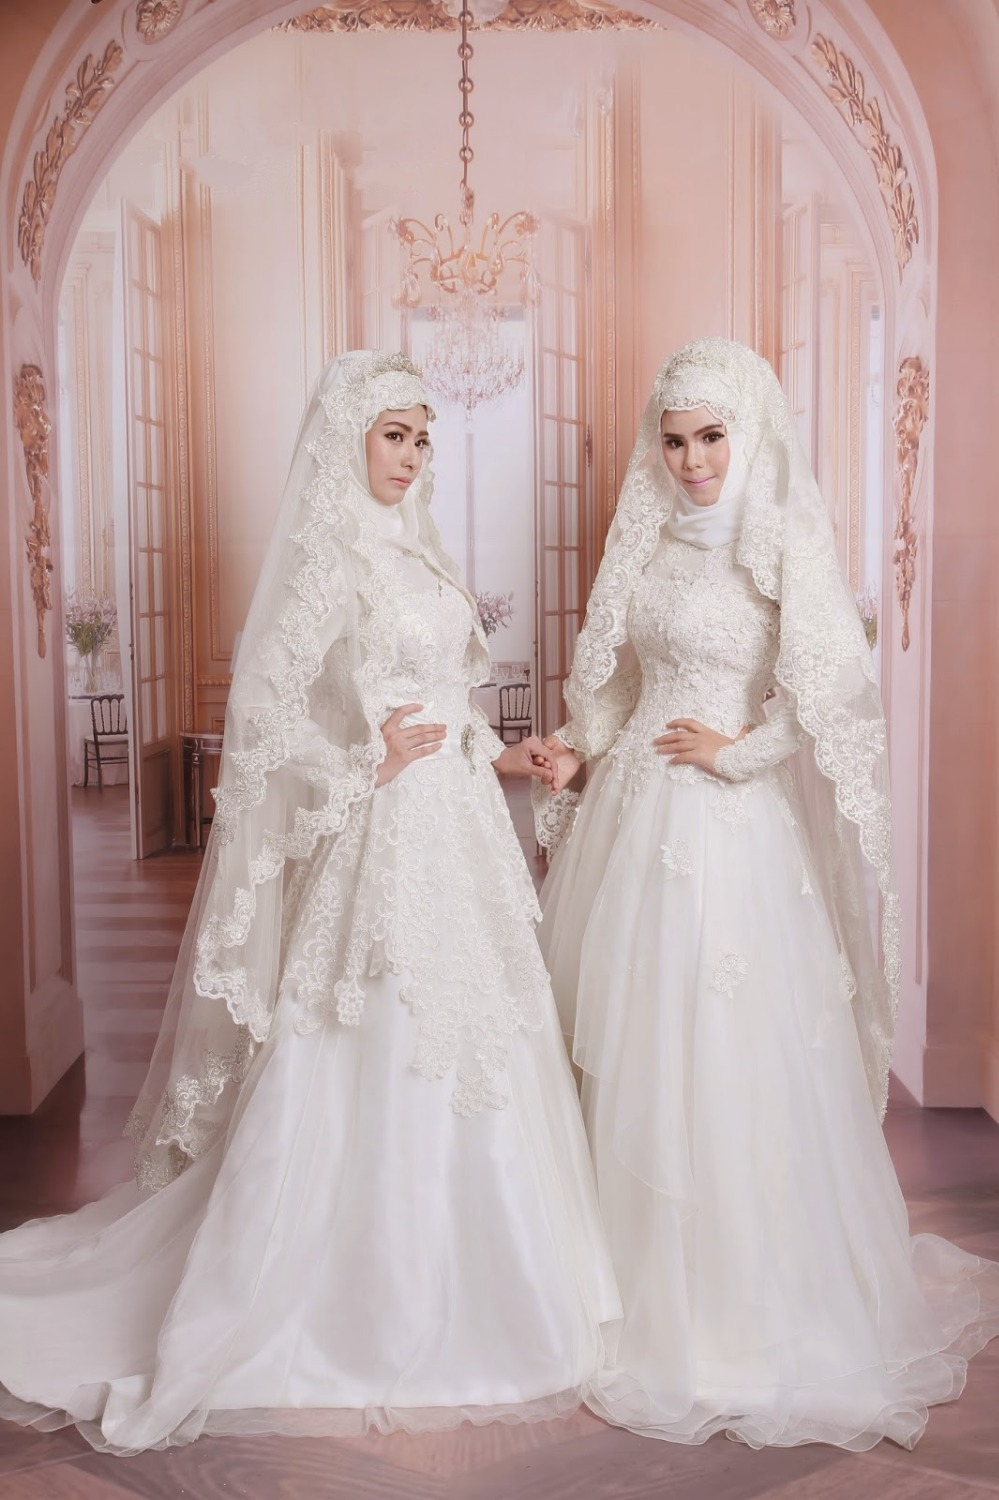 Arabic Sequins Beaded Lace High Neck Muslim Wedding Dress With Hijab muslim wedding dress Arabic Sequins Beaded Lace High Neck Muslim Wedding Dress with Hijab